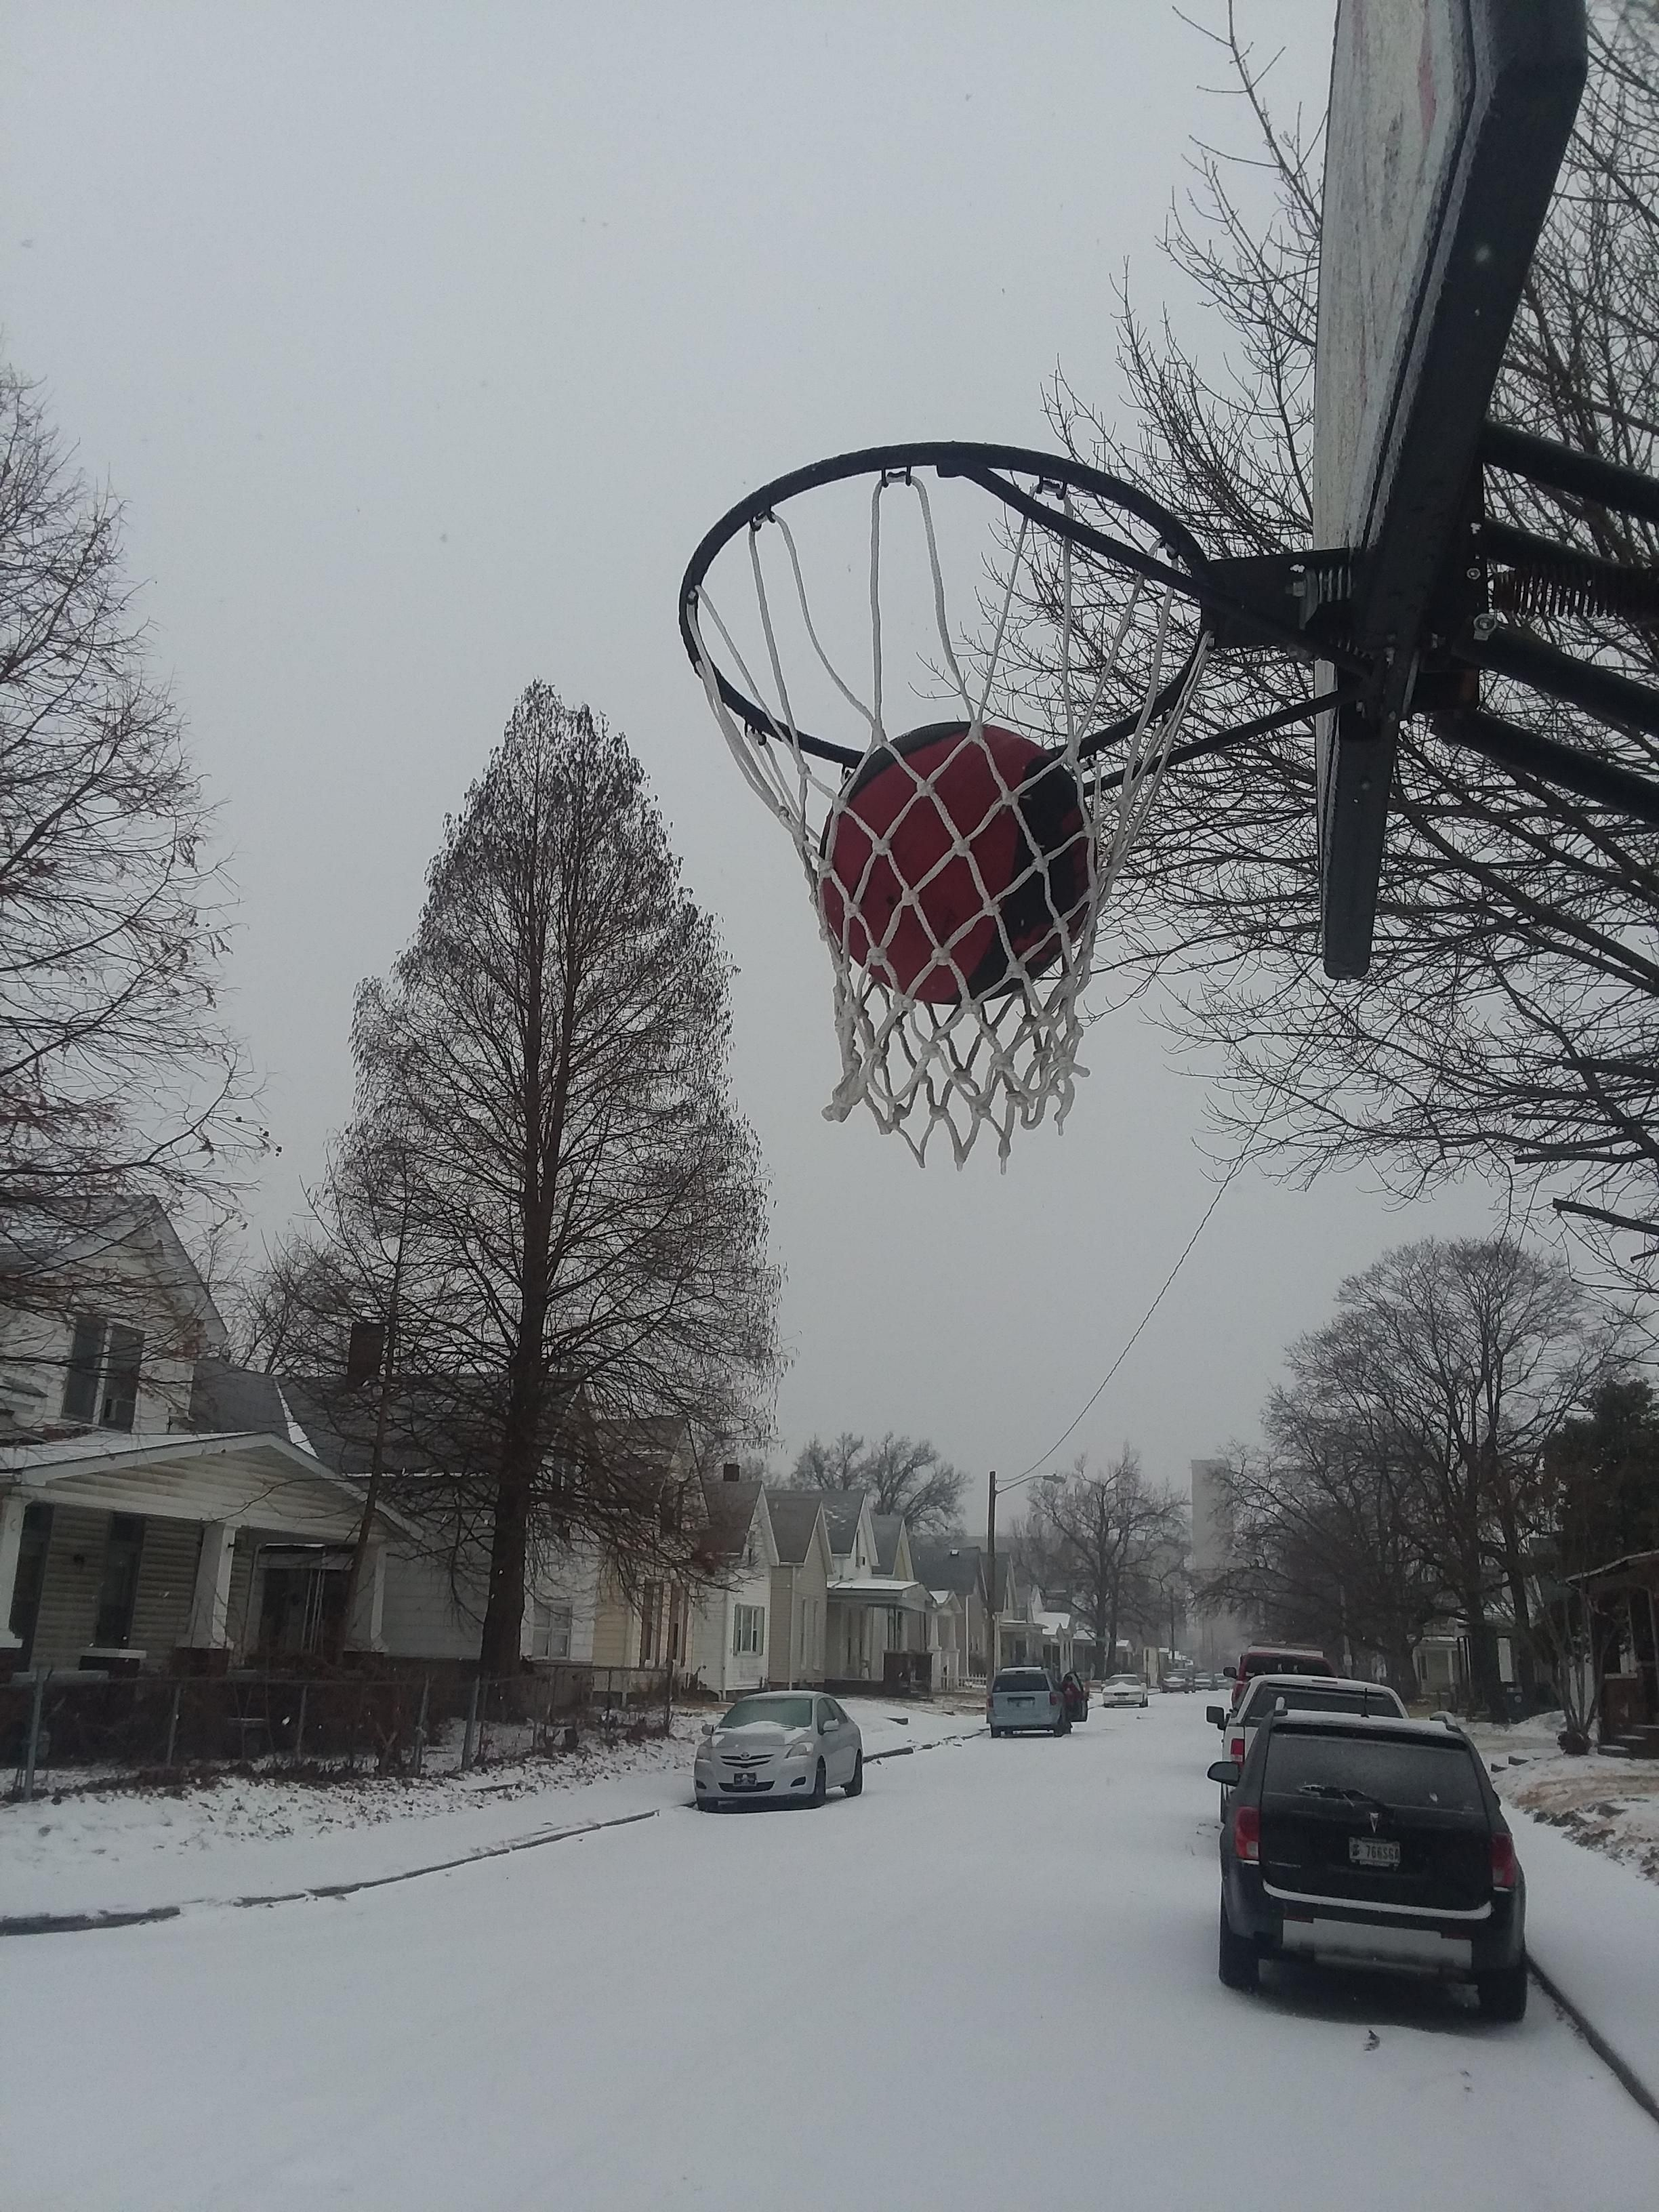 Well it is too cold to play basketball...